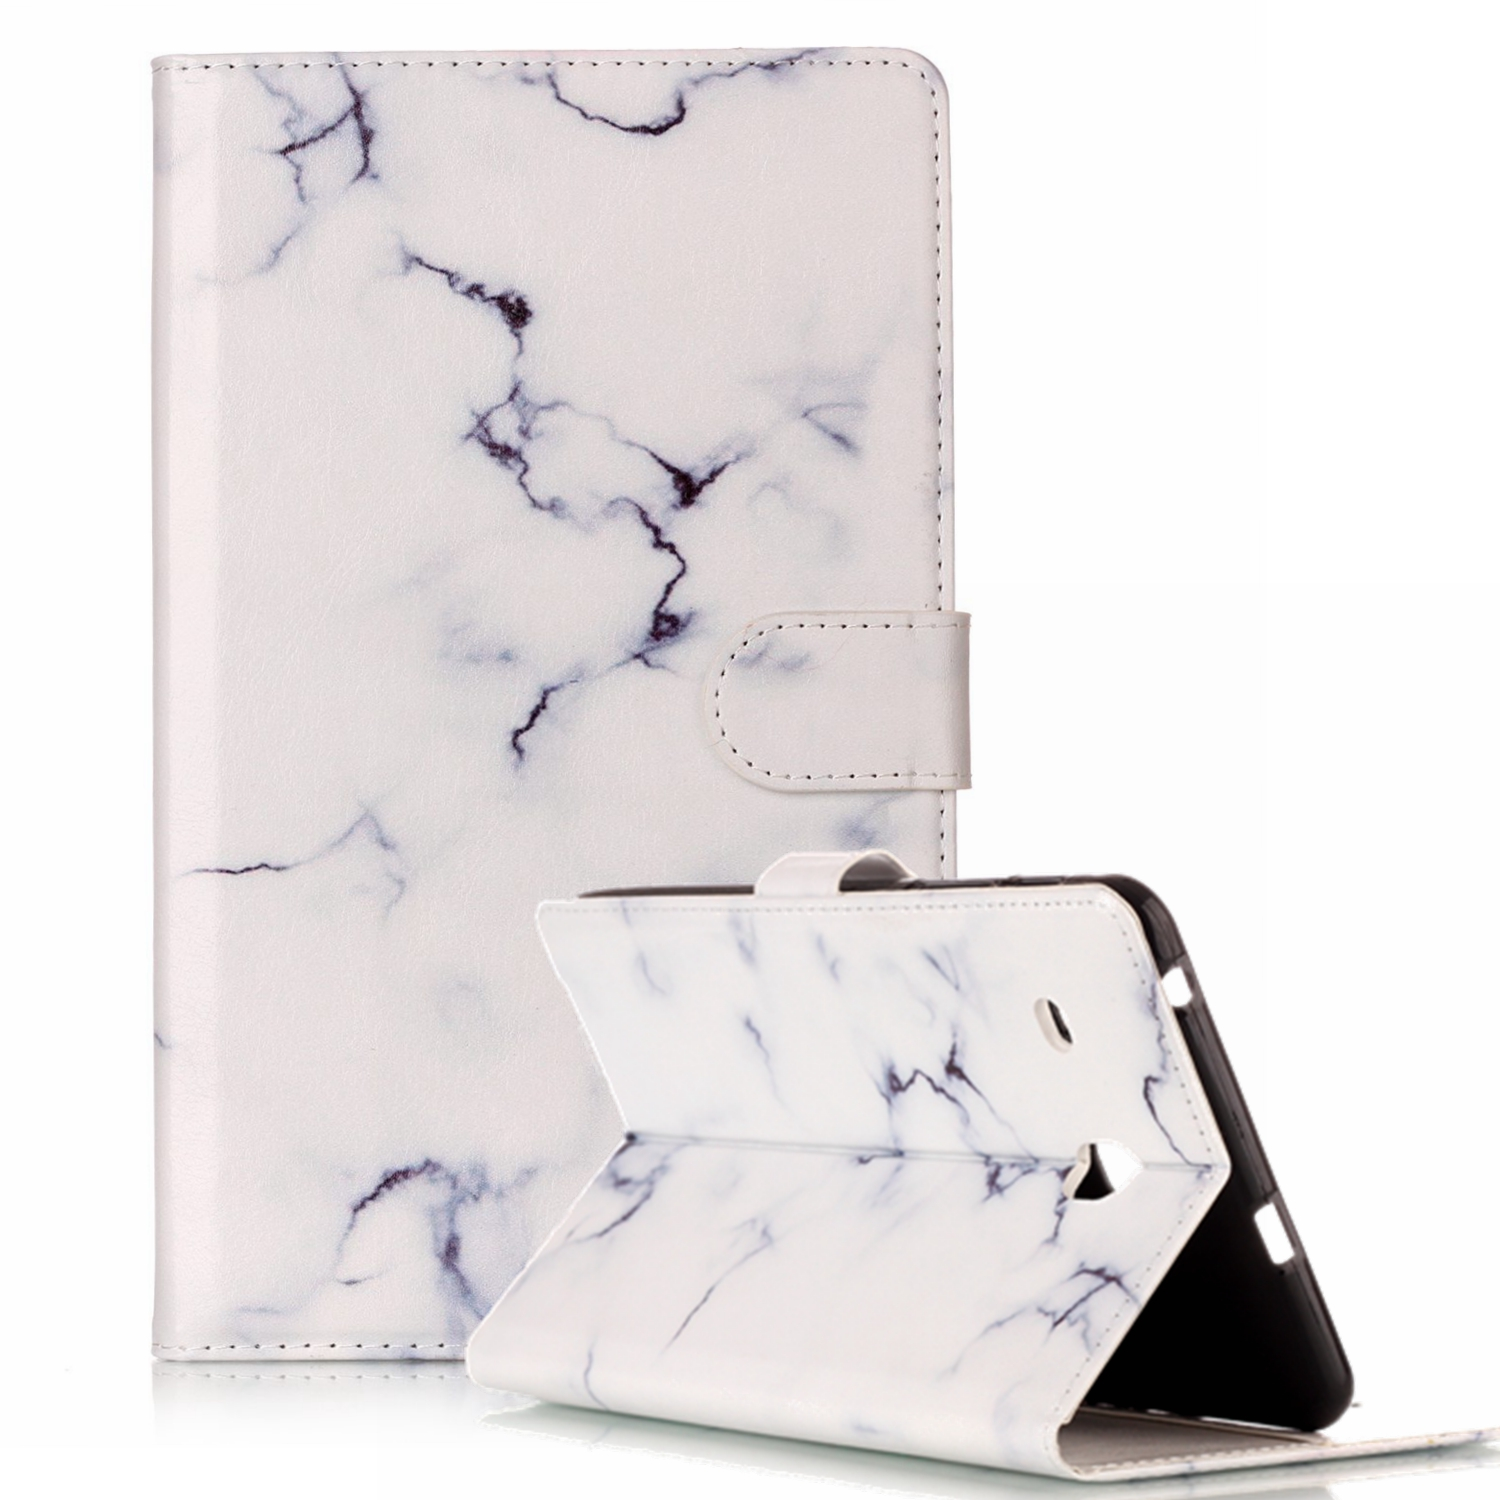 Goodest Folio Case for Galaxy Tab A 10.1, Premium PU Leather Slim Fit Smart Stand Cover with Auto Sleep/Wake for Samsung Galaxy Tab A 10.1 Inch (NO S Pen Version SM-T580/T585/T587), White Marble